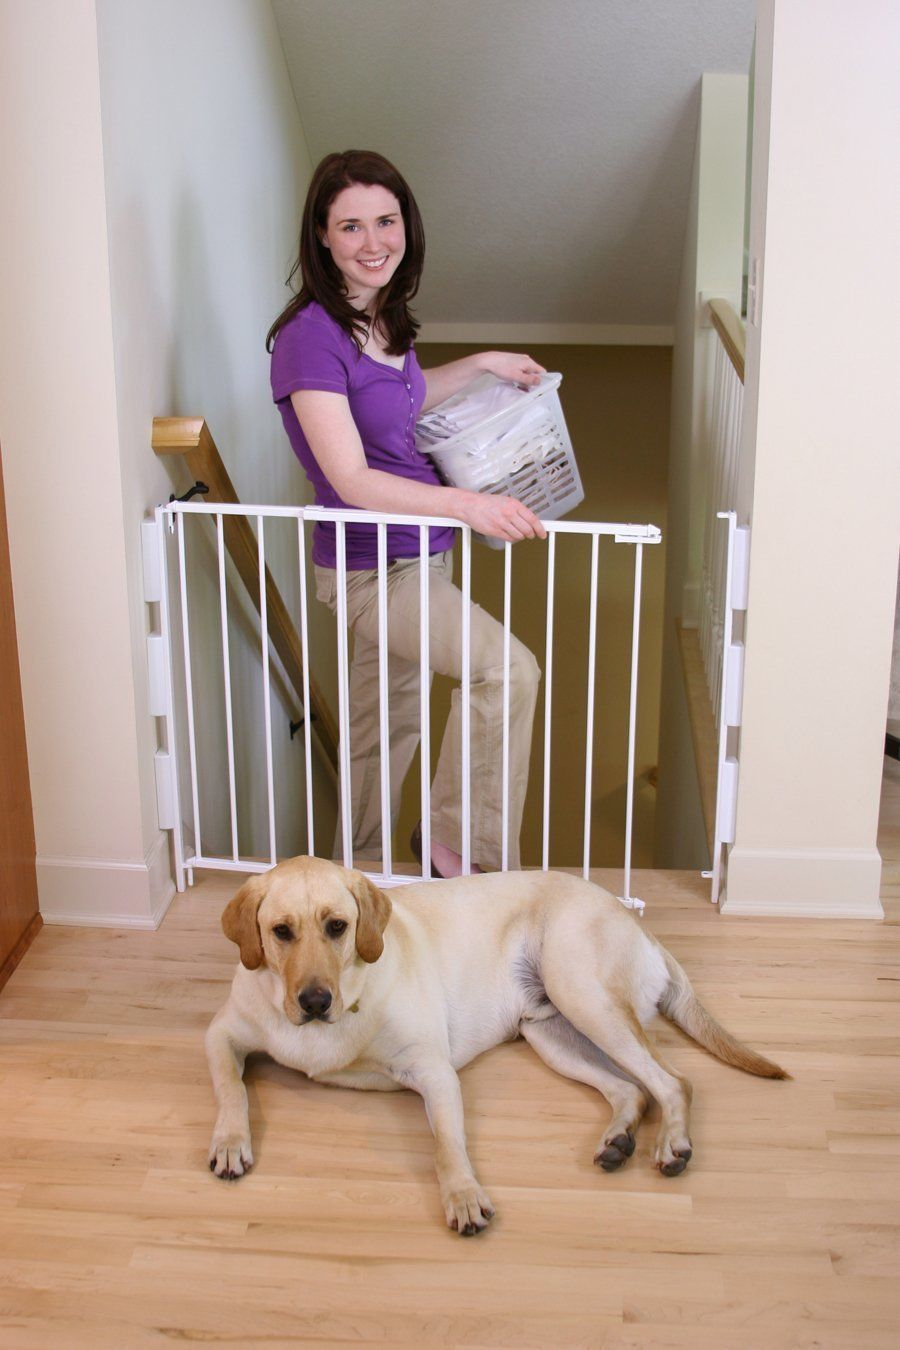 Details About Regalo Extra Tall Top Of Stairs Gate Mounting Kit White Baby  Child Safty At Home